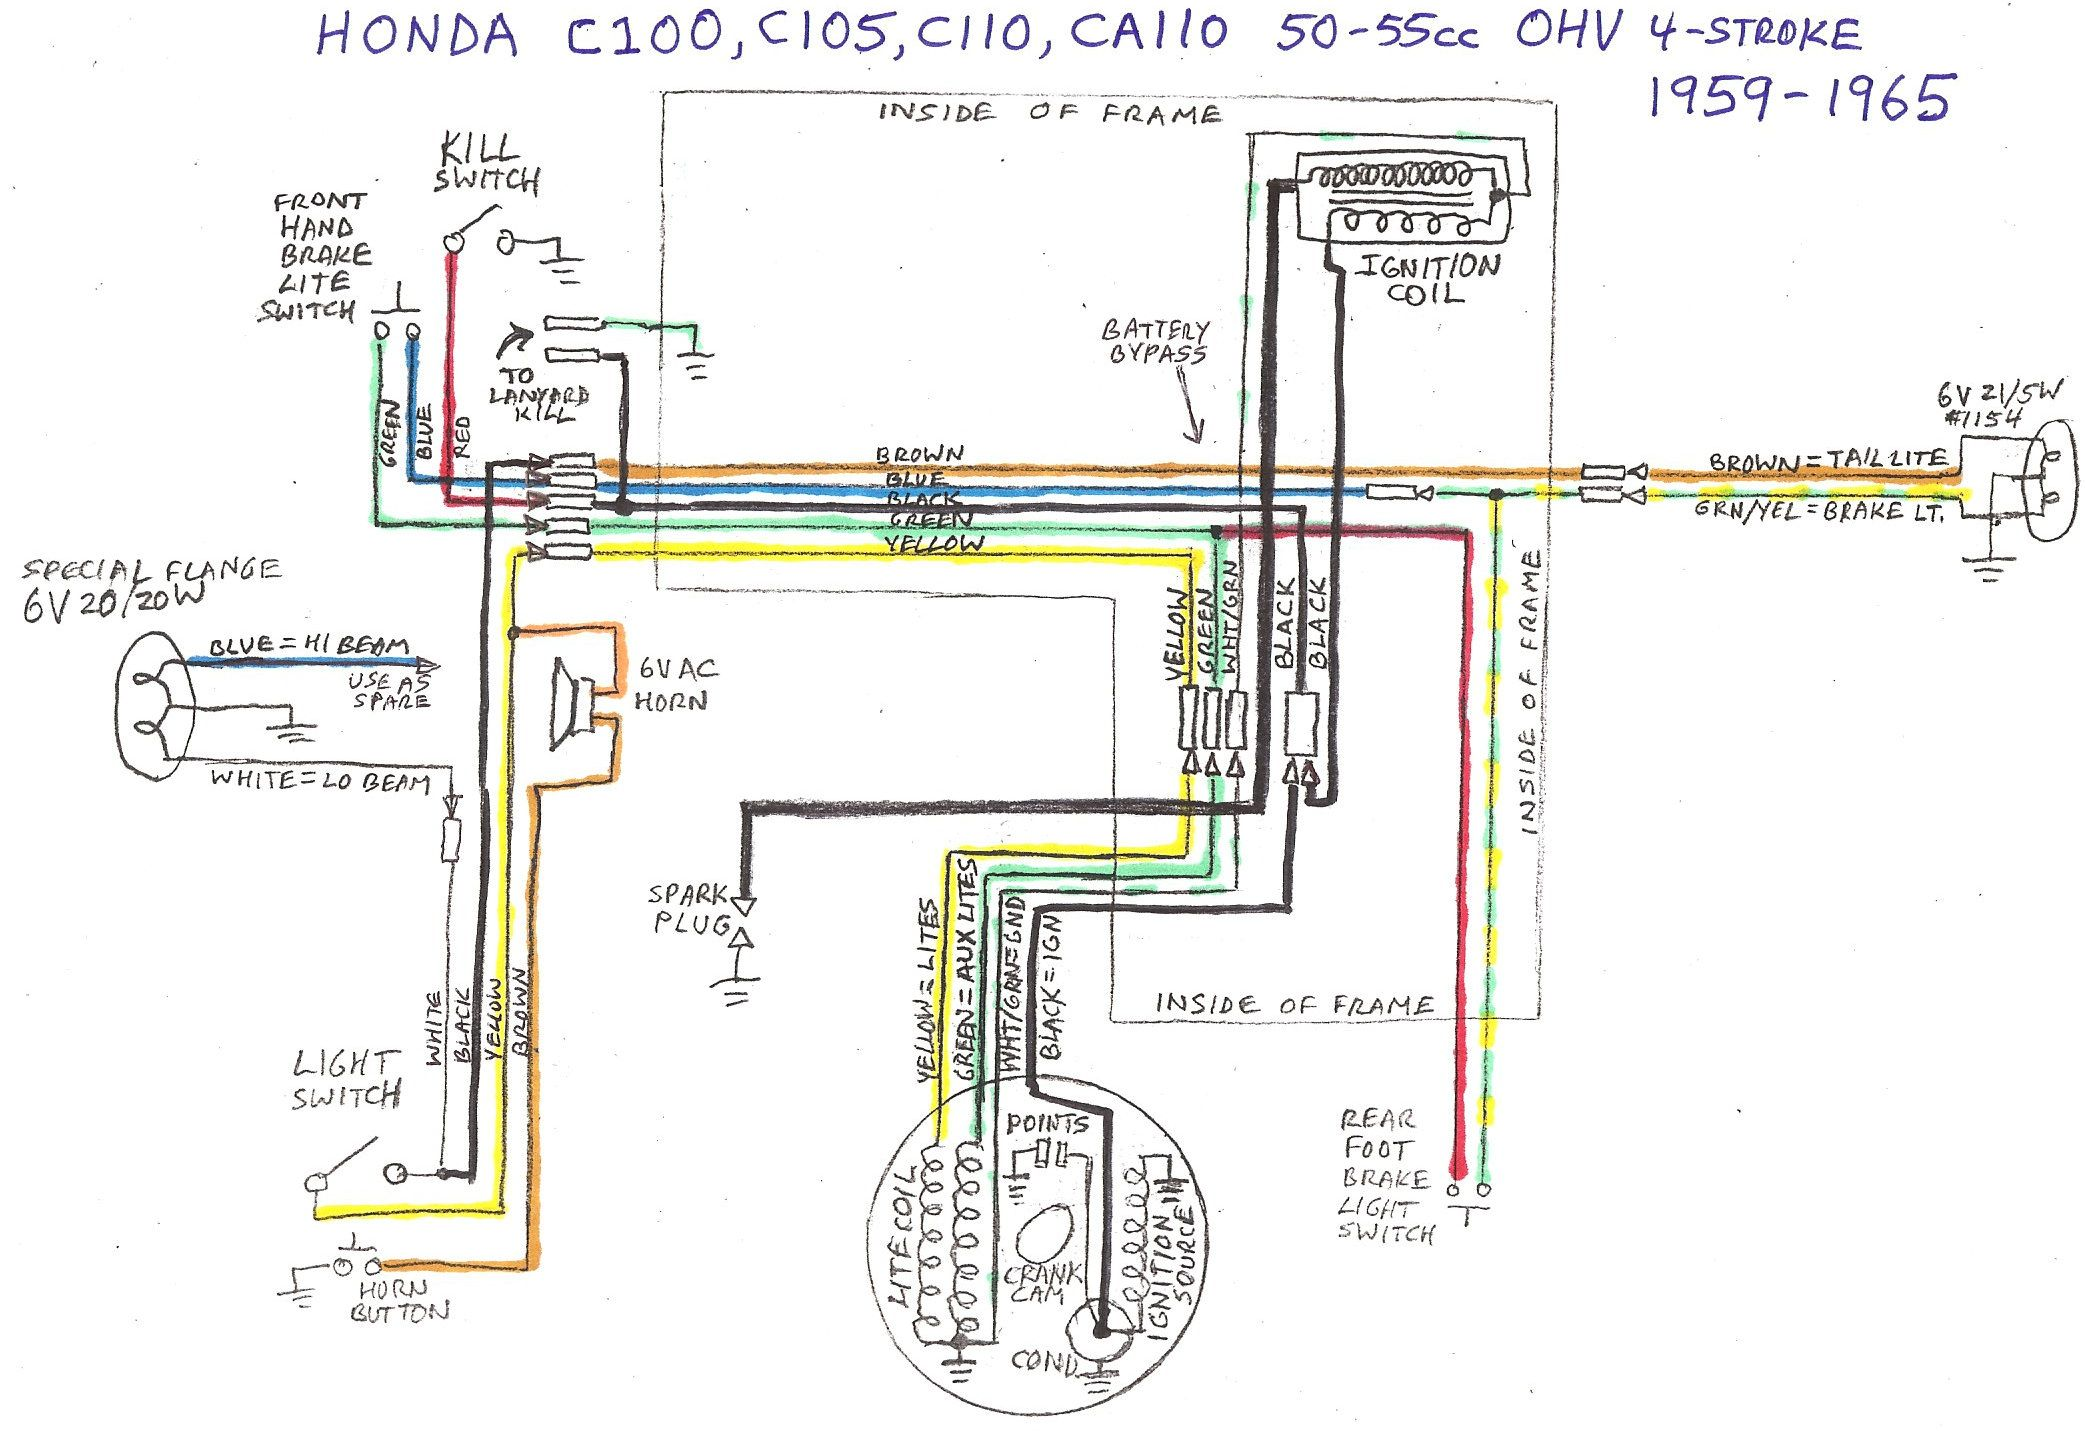 small resolution of honda 70cc wiring wiring diagram honda 70cc pit bike honda circuit diagrams wiring diagram center mix